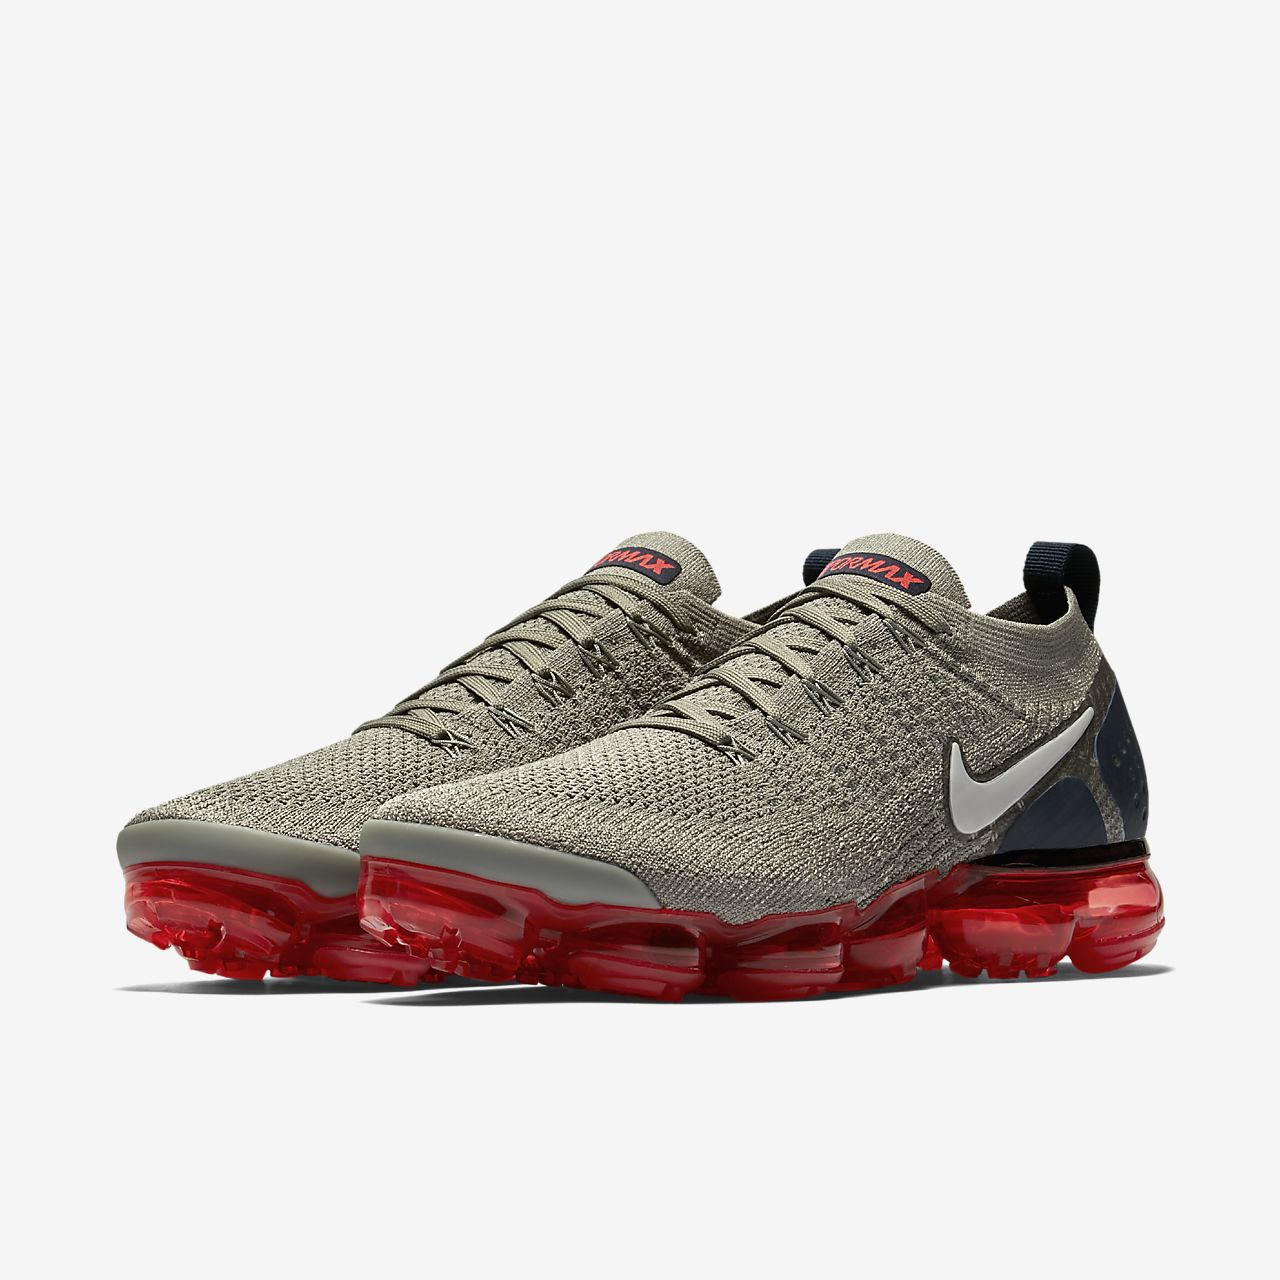 new product 83c12 4aa40 Chaussure de running Nike Air VaporMax Flyknit 2 pour Homme. Nike FR